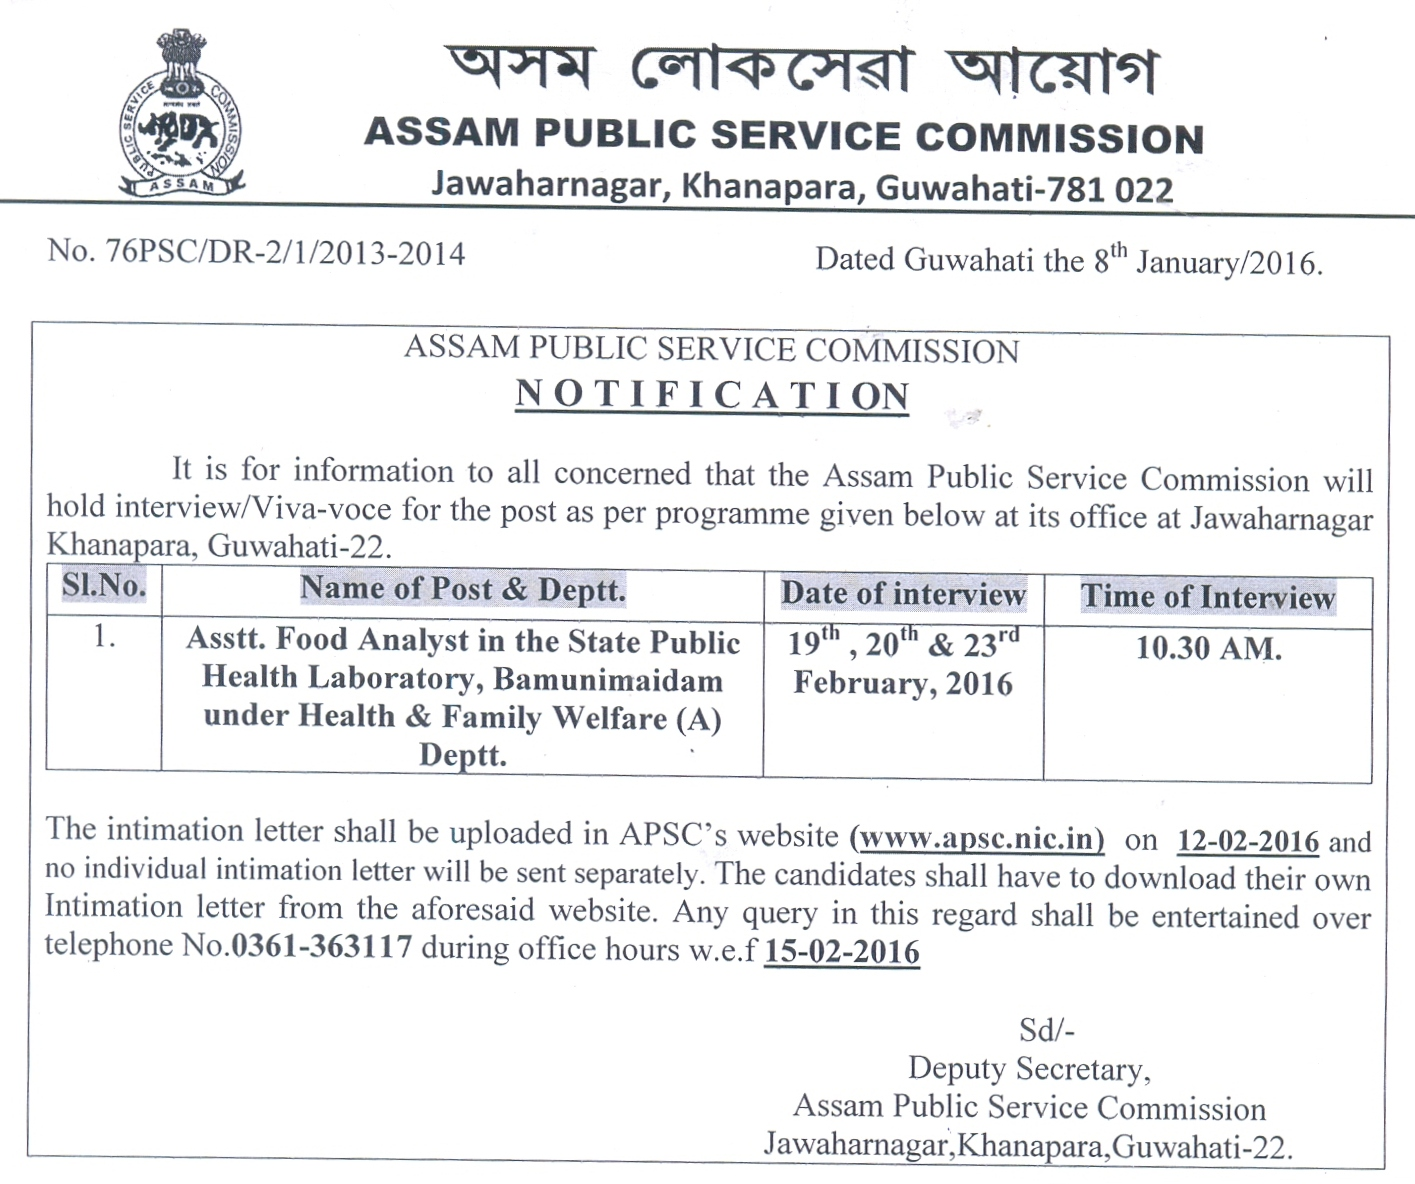 assam public service commission viva call letter for the post of jr engg civil under irrigation deptt